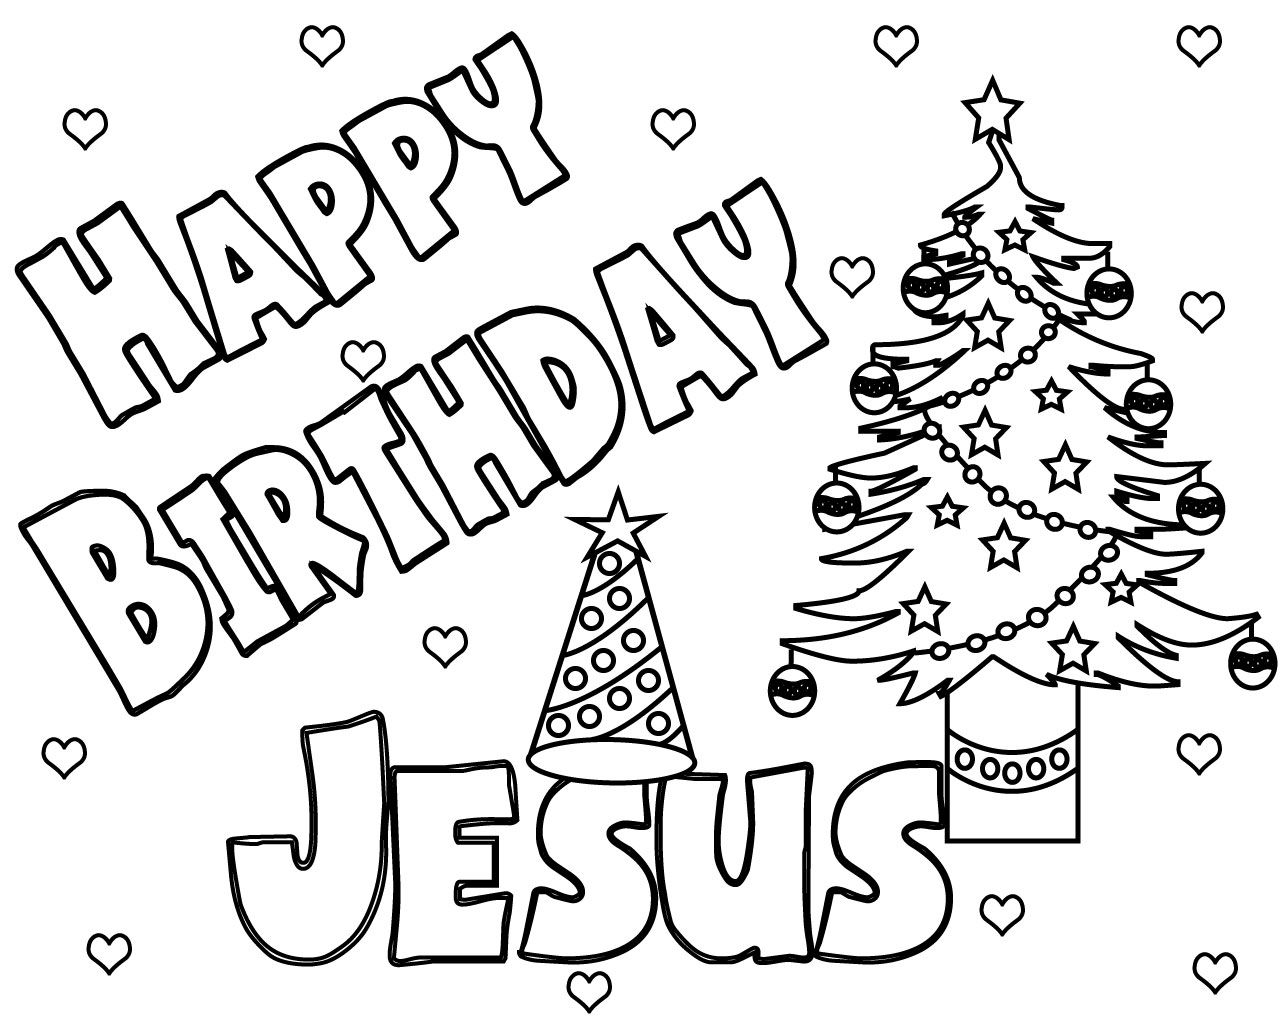 Happy Birthday Jesus Coloring Pages Jesus Birthday Is Celebrated On 25th Of Decembe Happy Birthday Coloring Pages Jesus Coloring Pages Birthday Coloring Pages